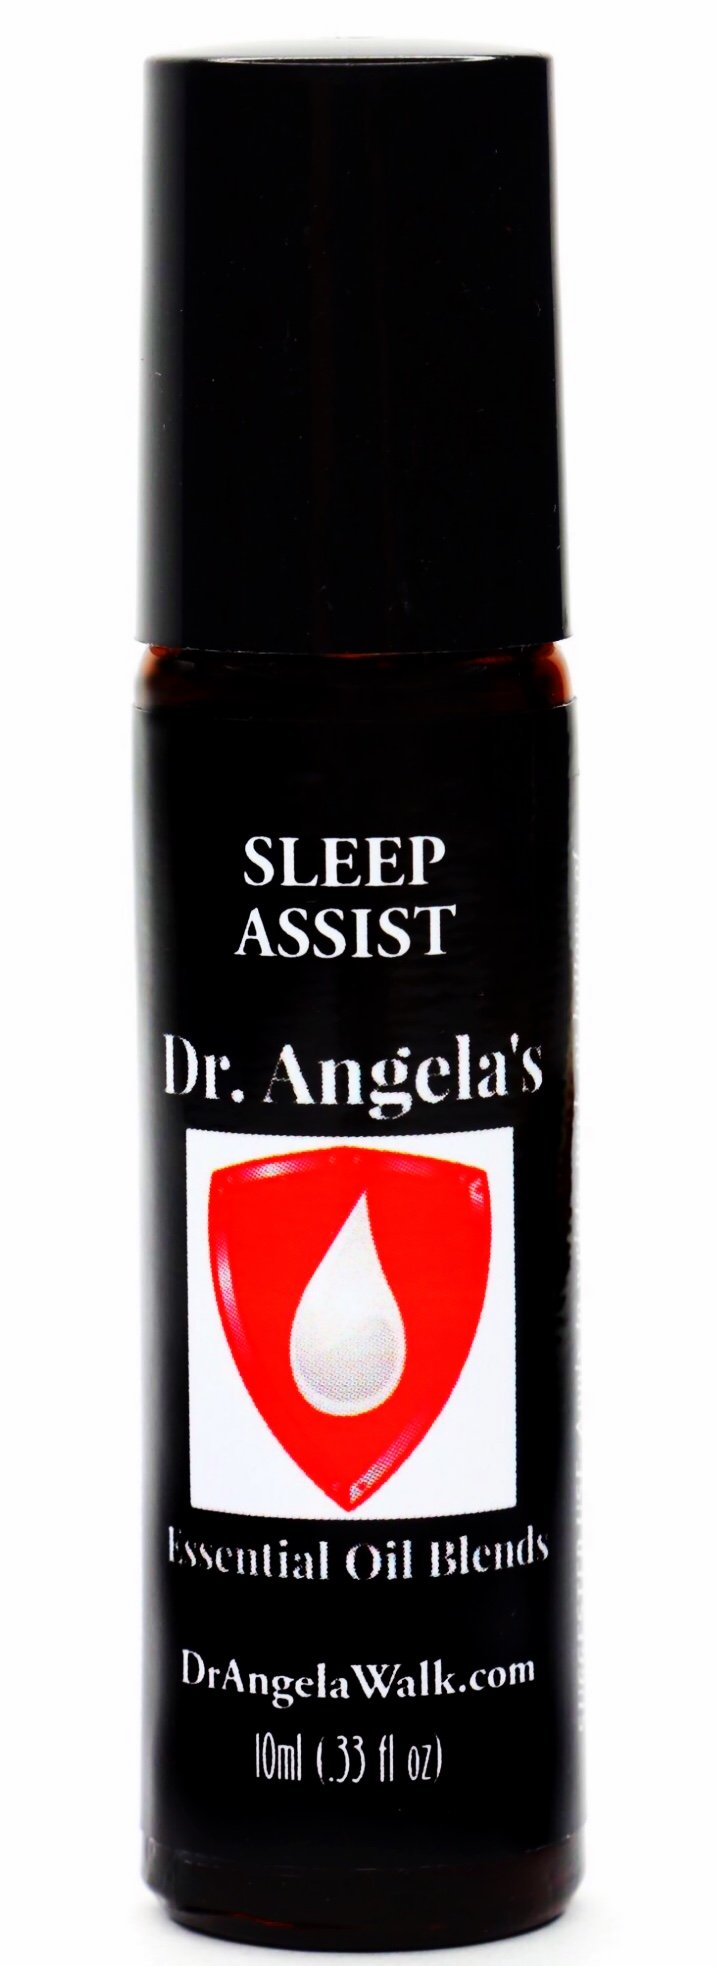 Dr. Angela's Sleep Assist Essential Oil Blend with Hemp Oil | Therapeutic Grade Insomnia Support Roll-On Bottle | Natural Sleep Aid 10 ml (.33 fl oz)